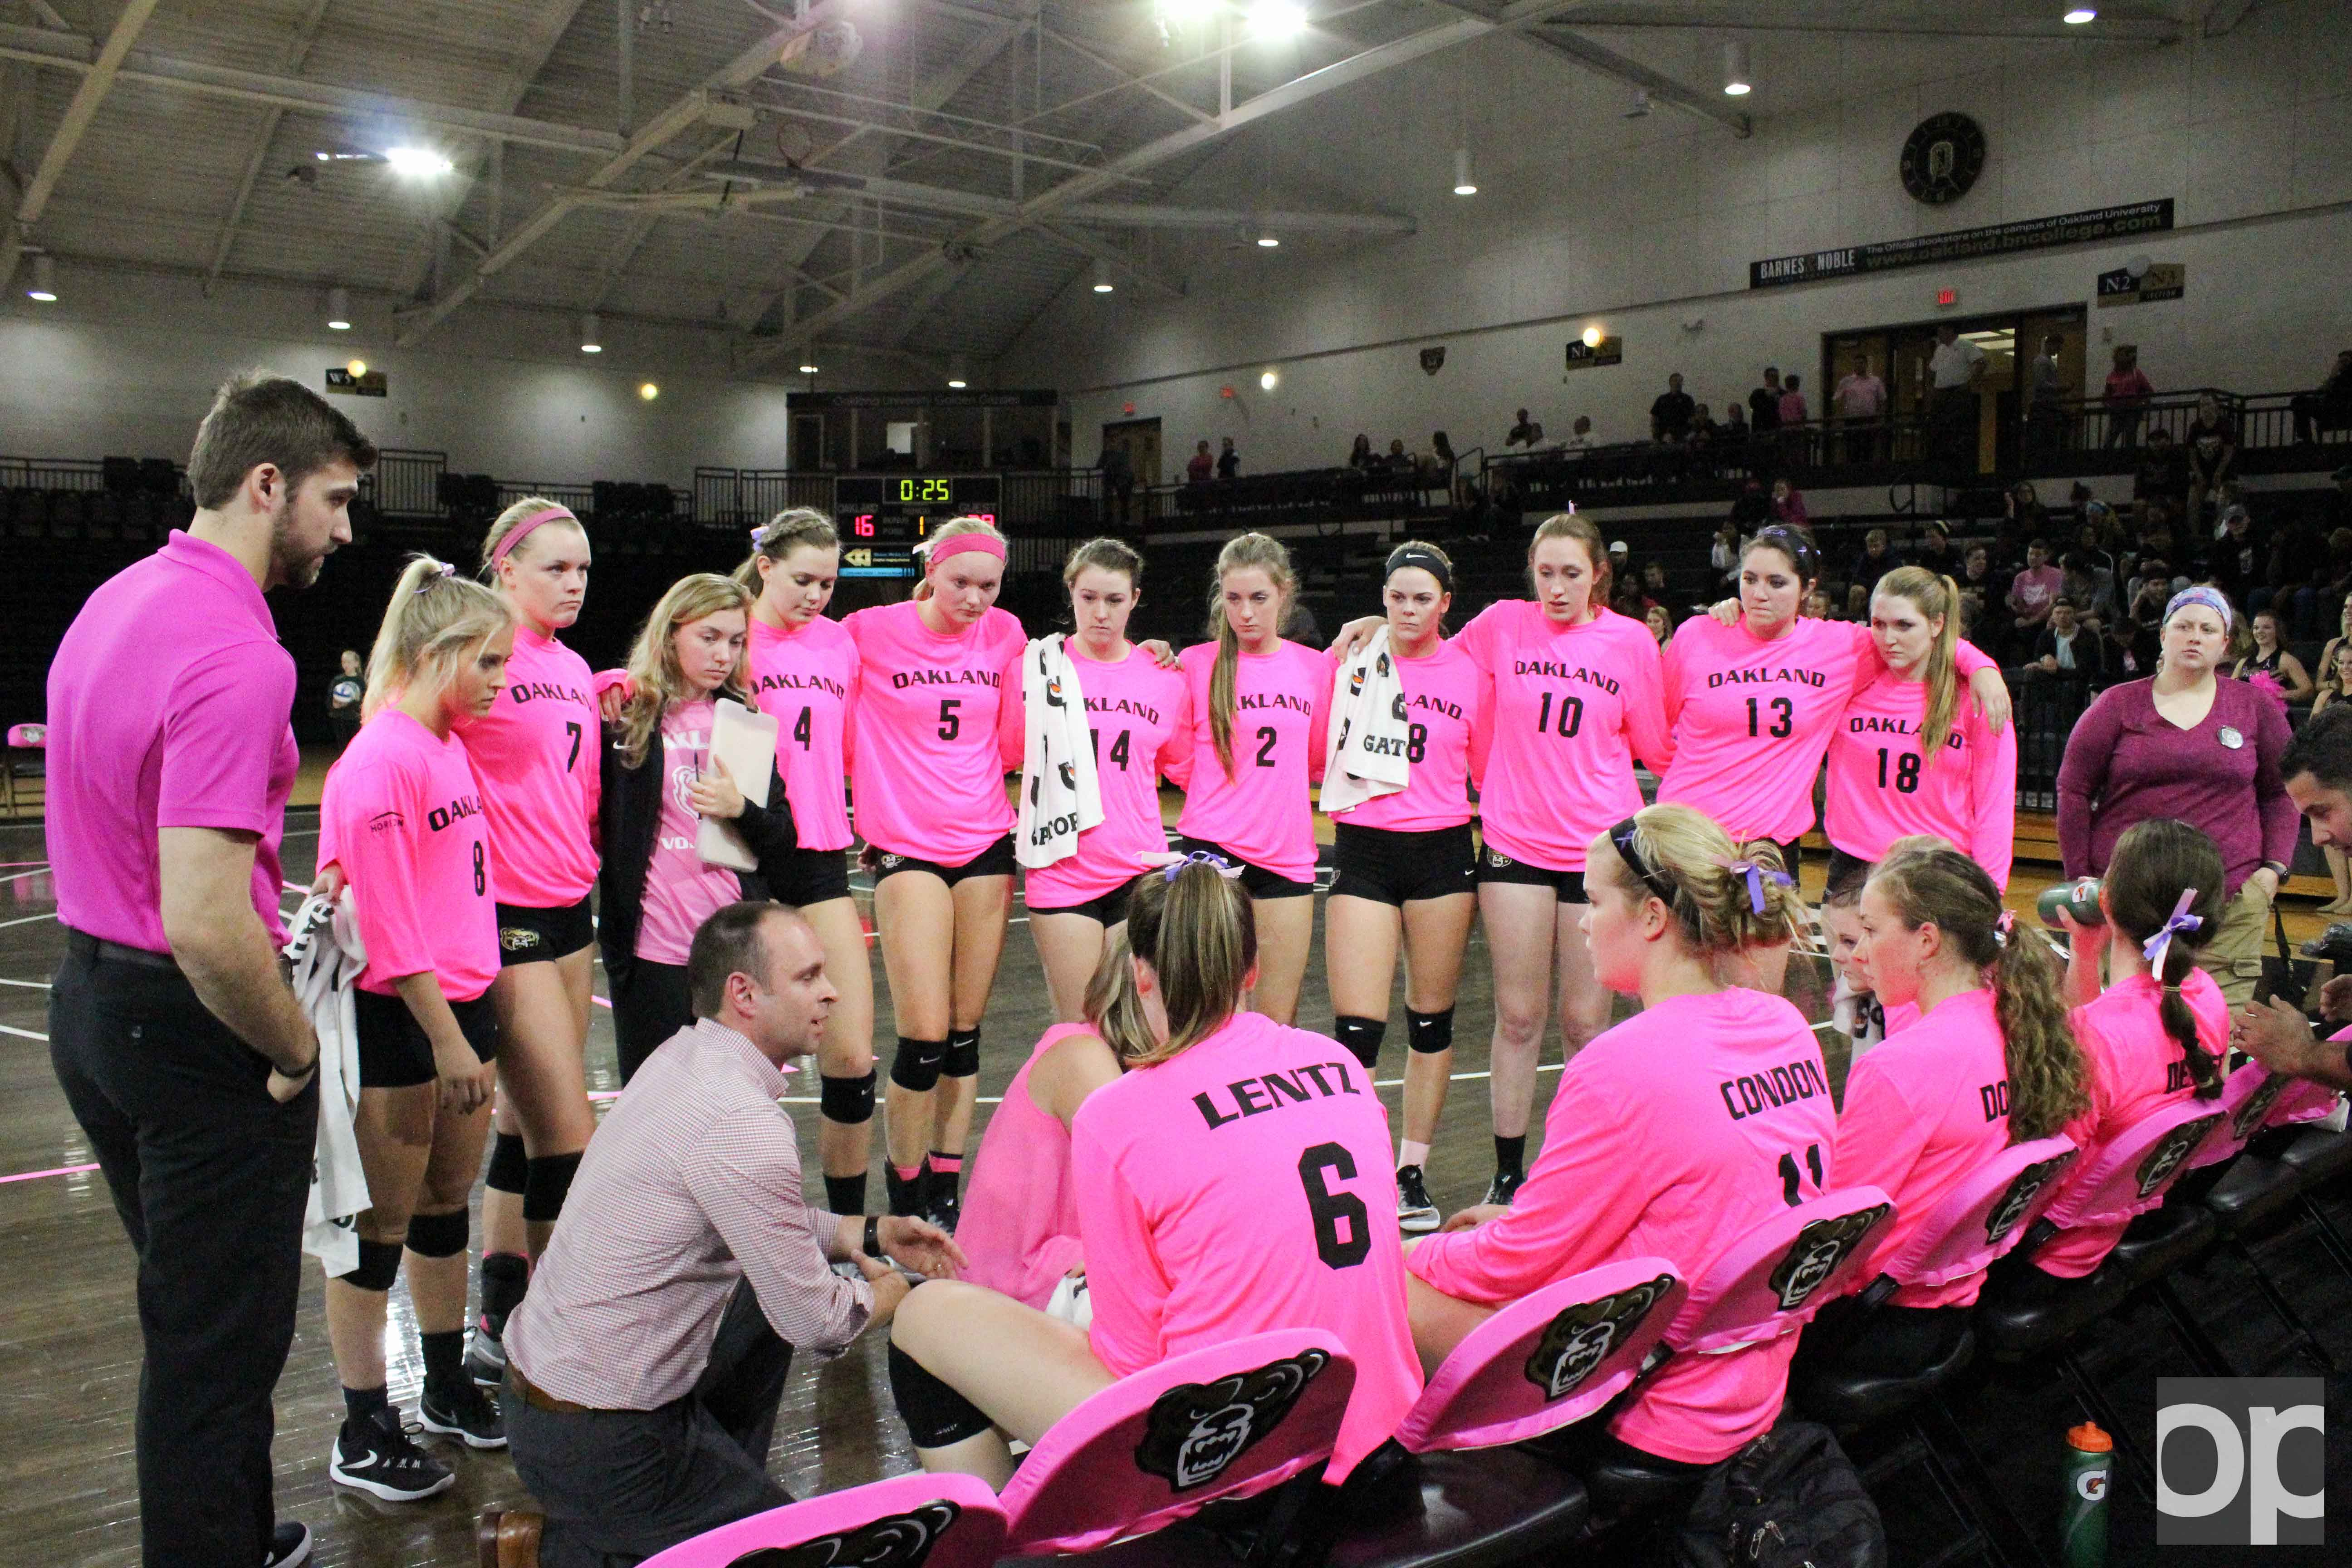 Oakland volleyball team wore pink jerseys Wednesday night to raise awareness for breast cancer.